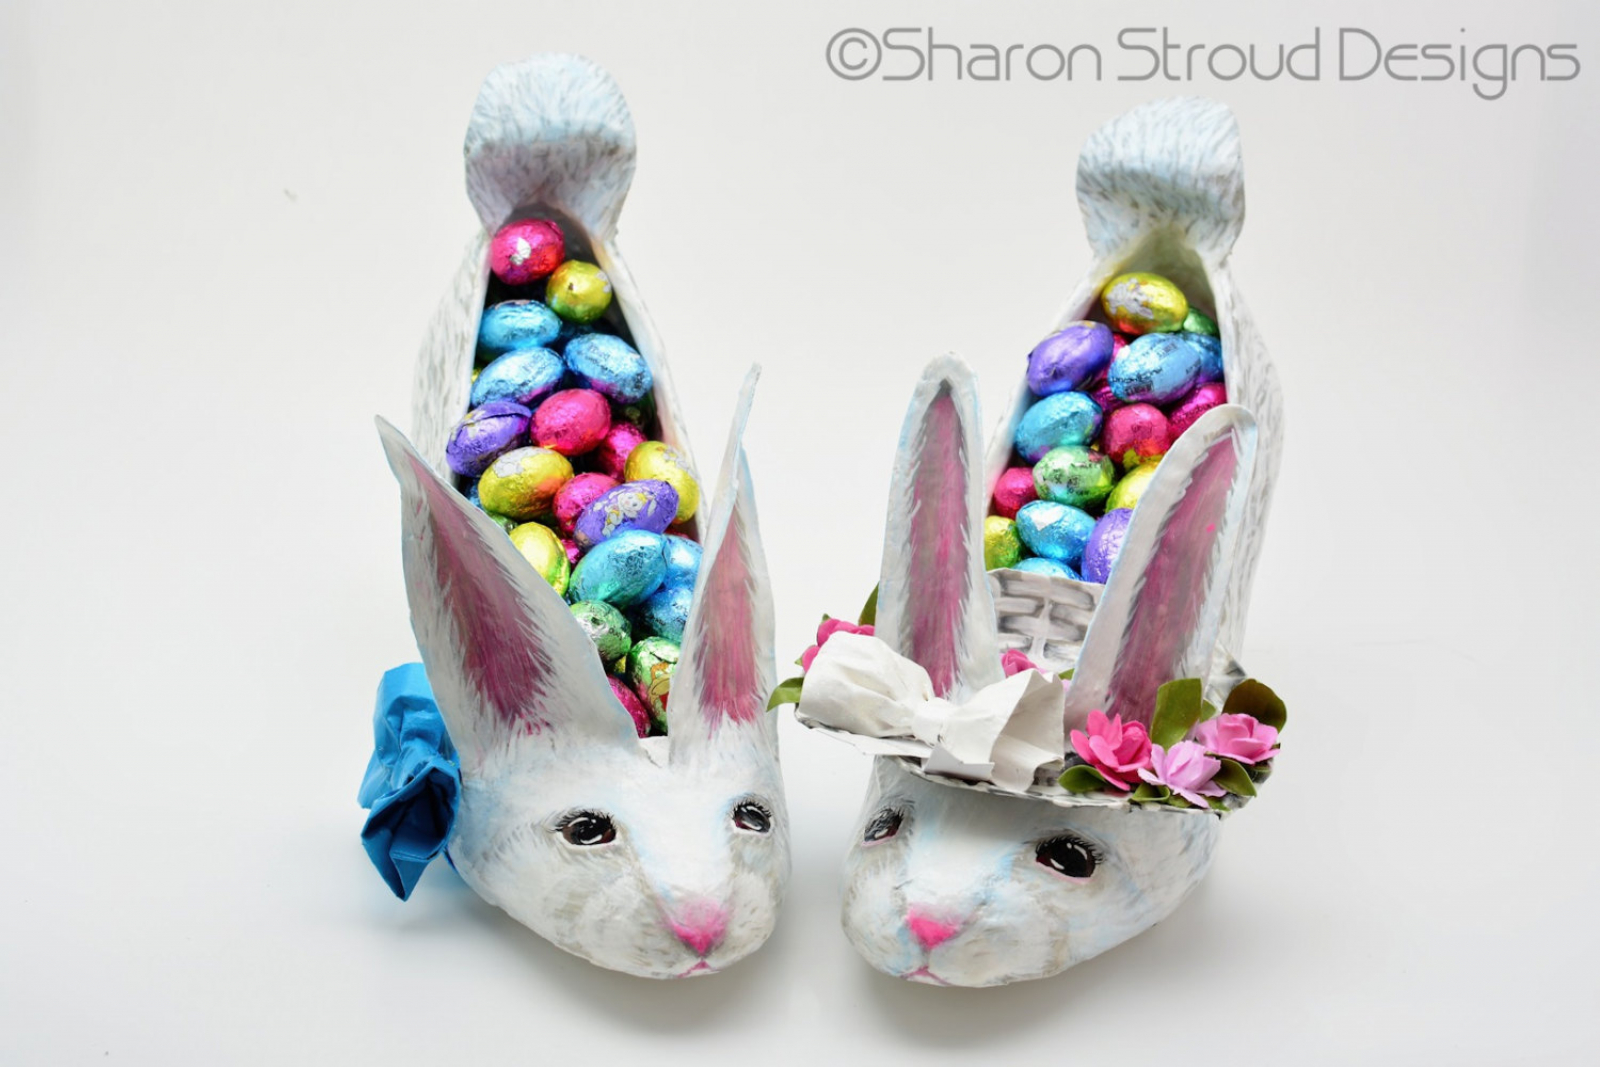 dfd009854a79 Set of boy and girl Easter bunny altered shoe sculptures